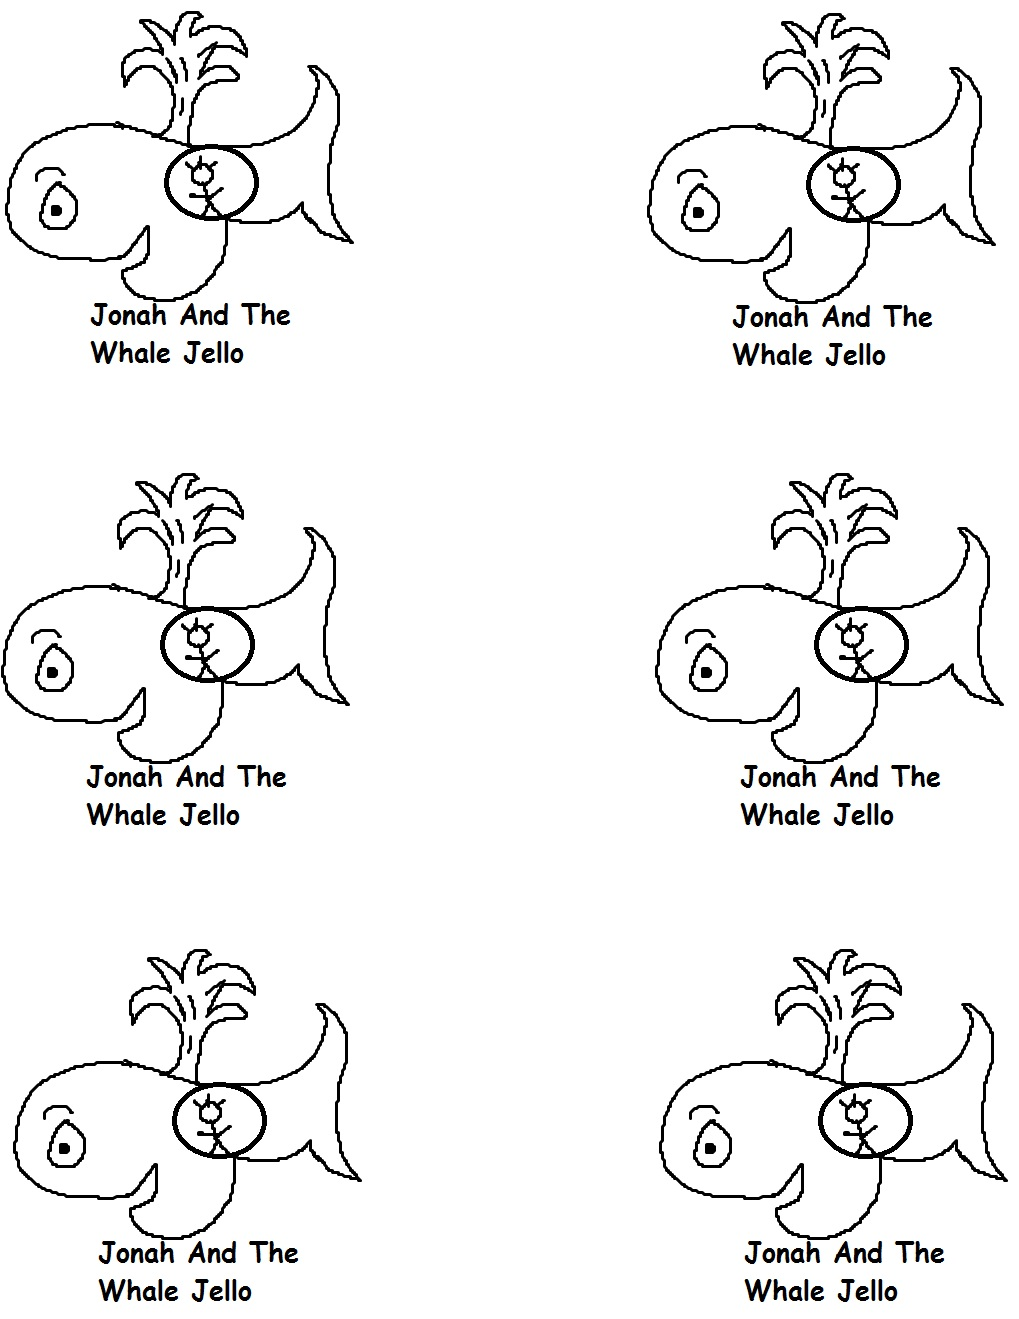 Coloring pages for jonah and the big fish - Plastic Cups Jonah And The Whale Template 6 Pictures 12 Pictures